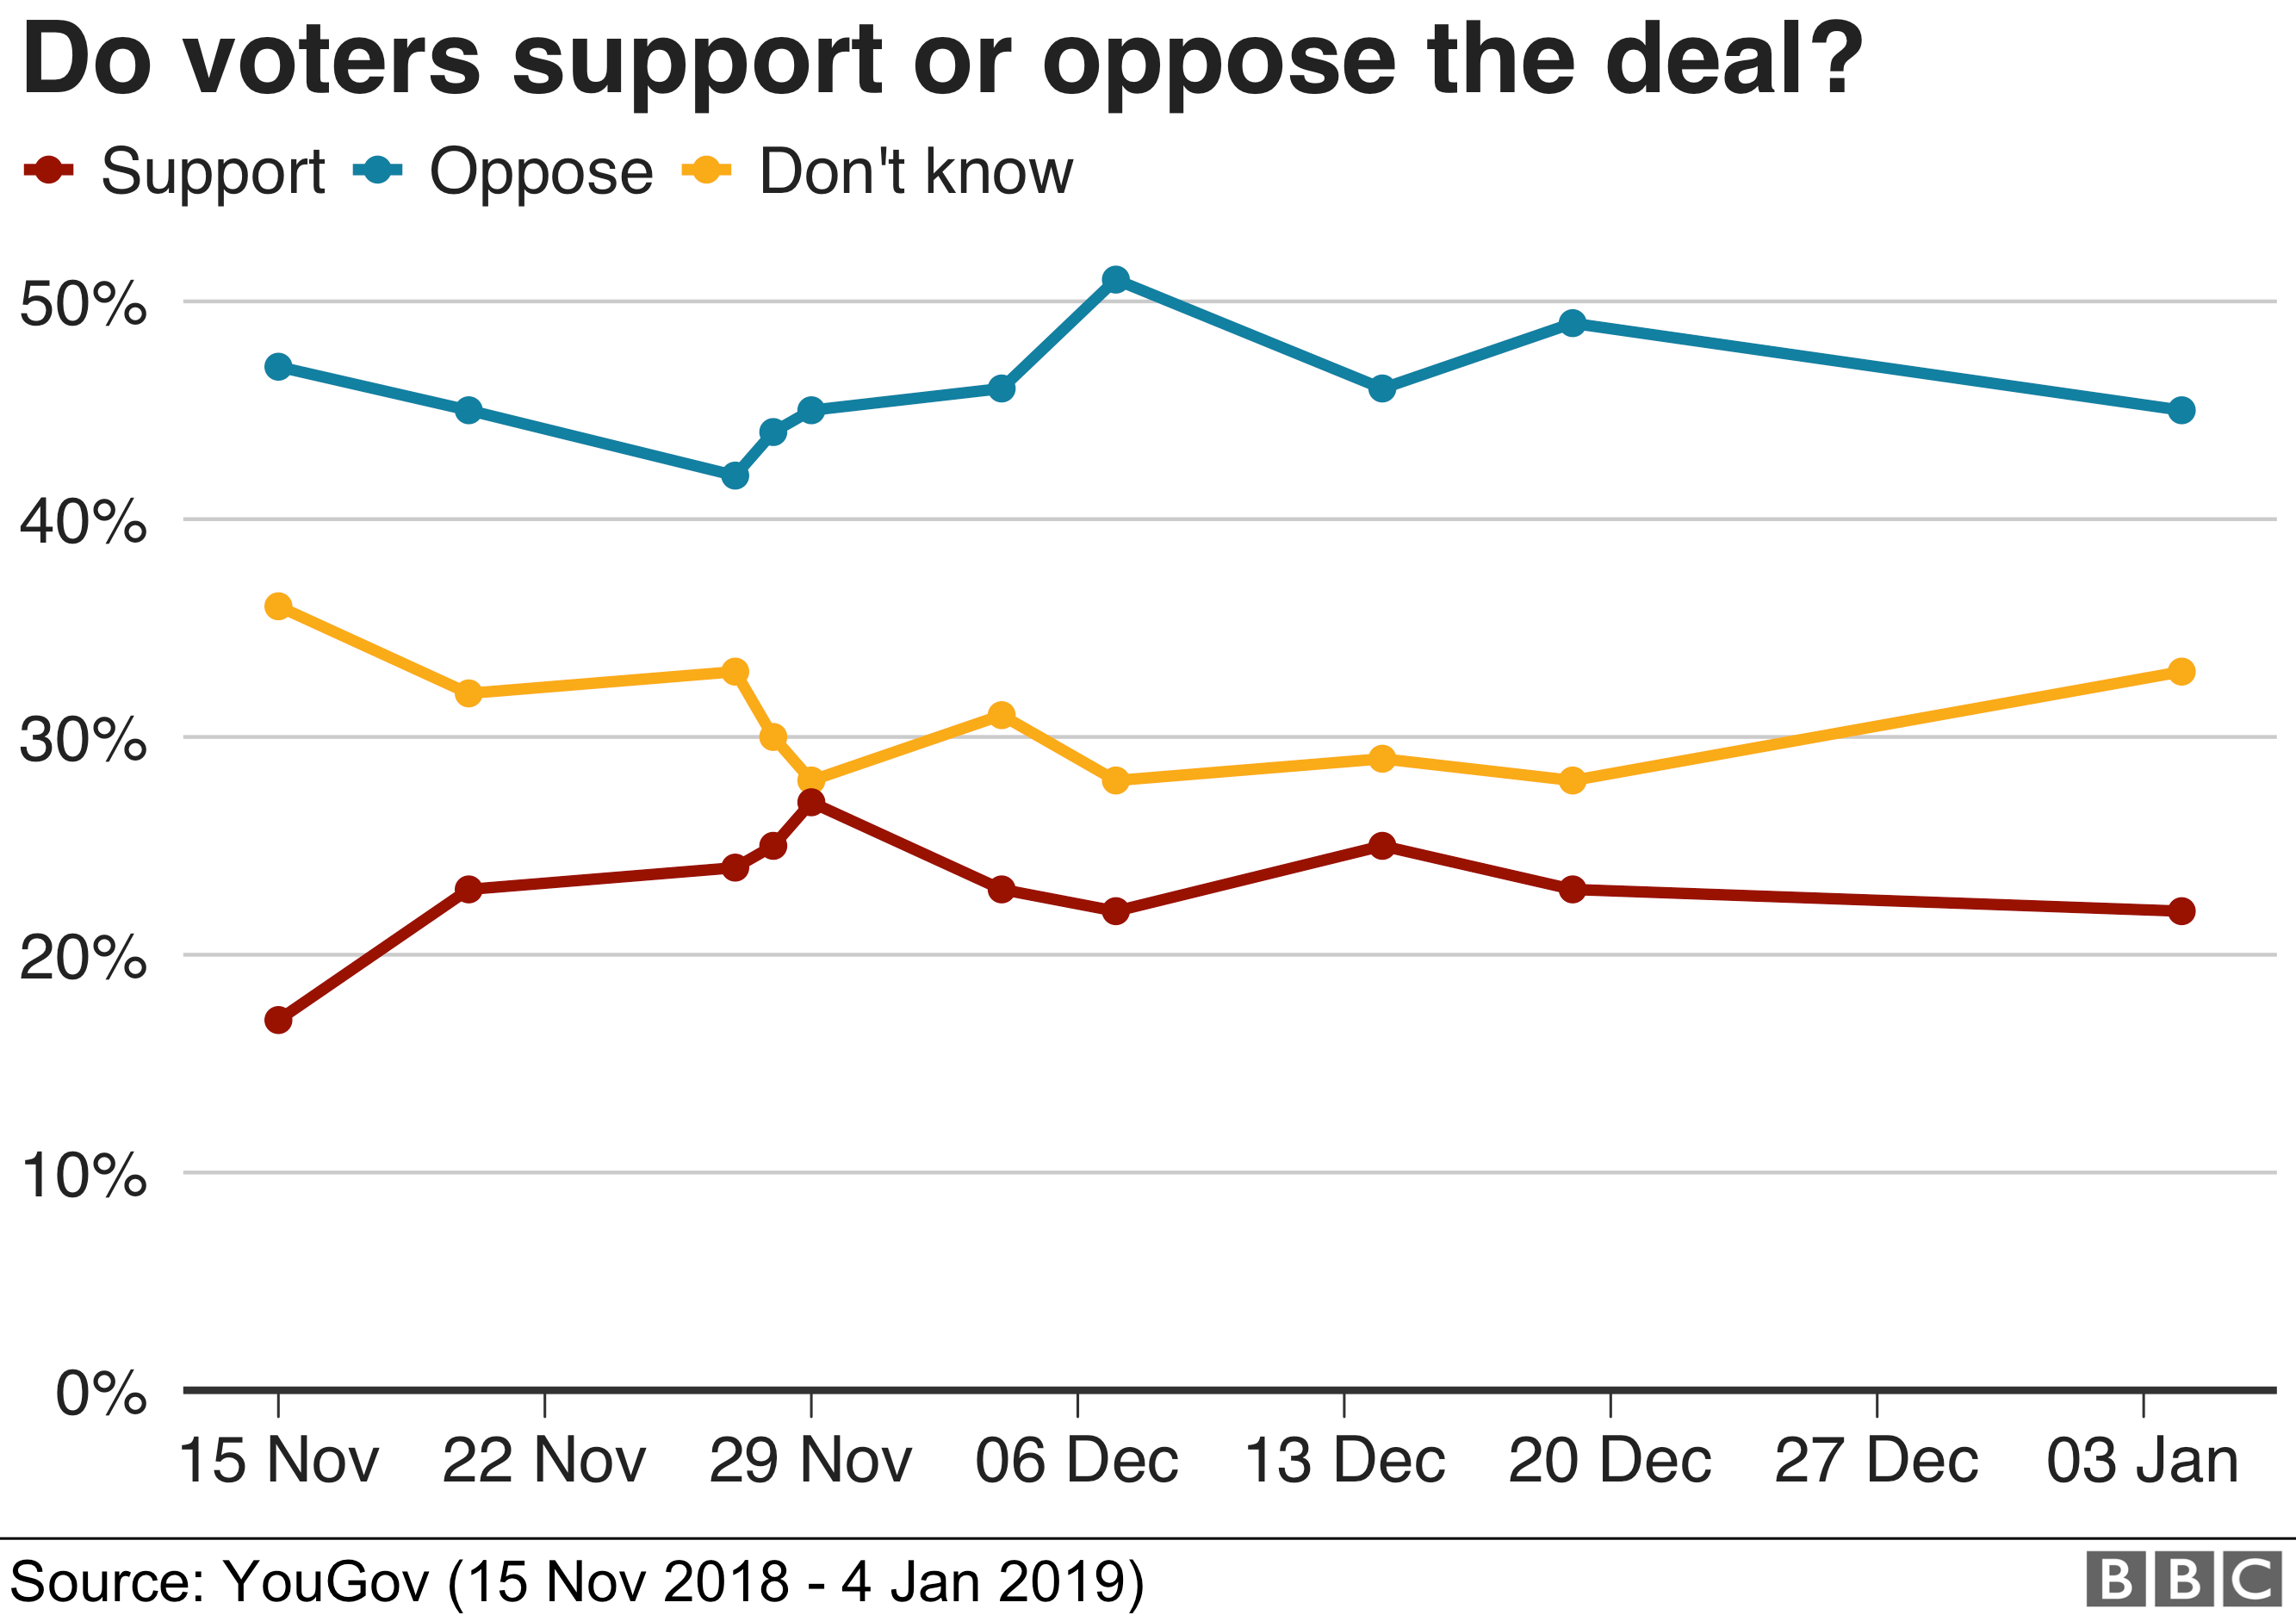 Do voters support or oppose the deal?